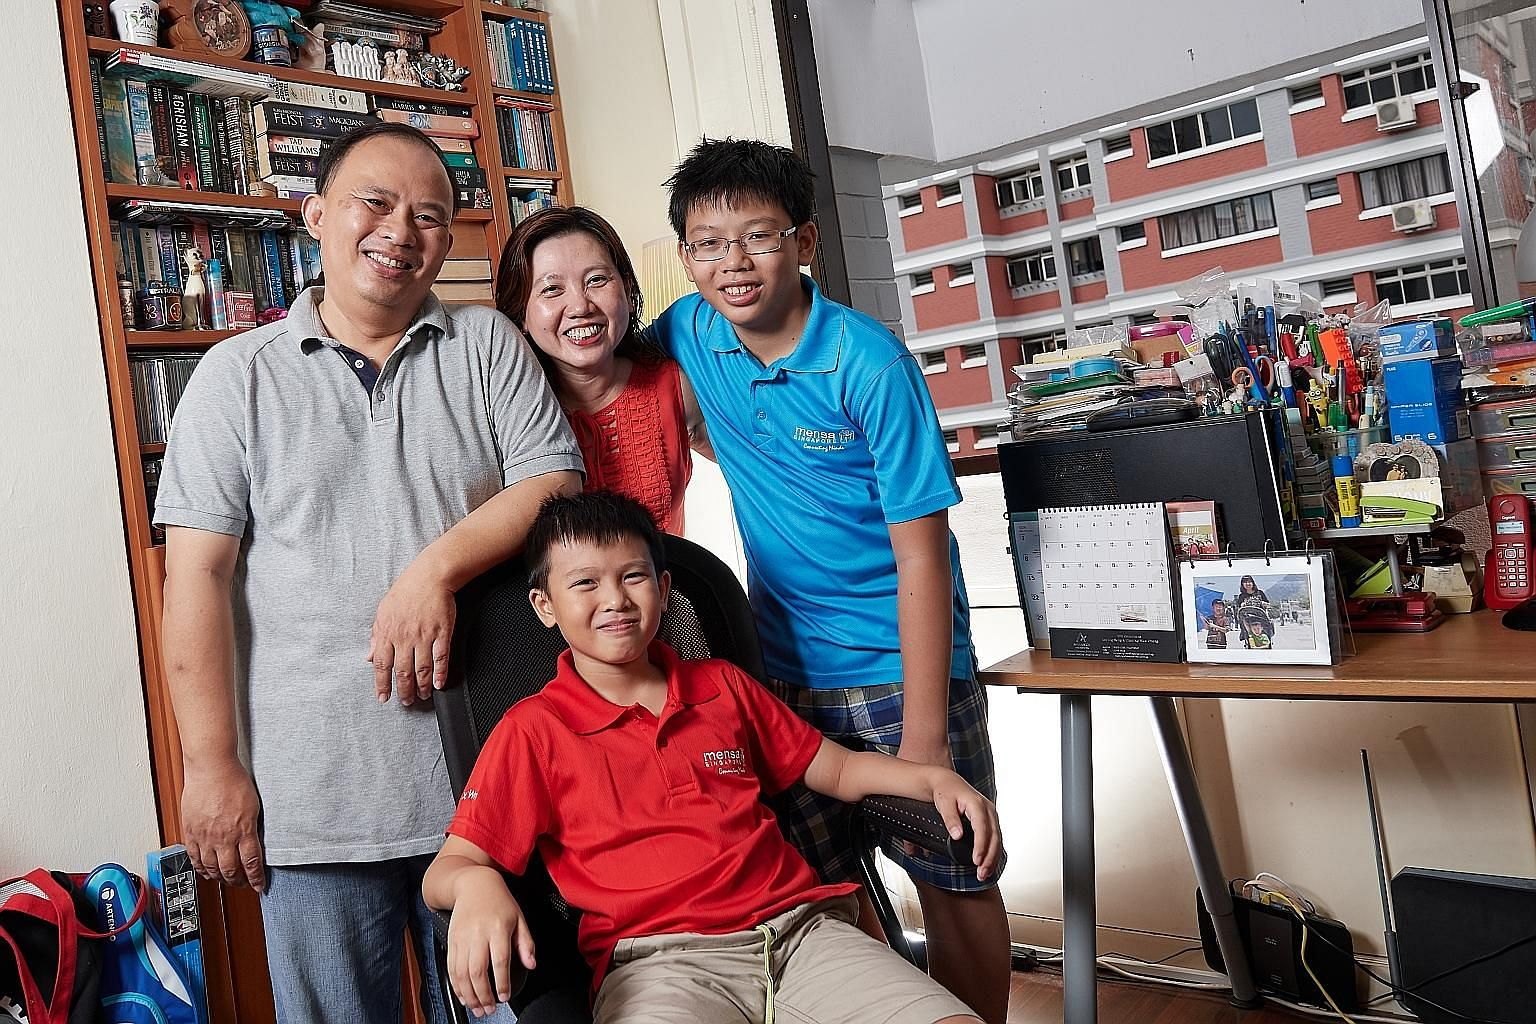 Xavier Wong (seated), 10, with his parents Anthony Wong and Angela Lee, and older brother Zachary. Xavier can solve maths problems meant for children two years older than he is and is a member of high-IQ society Mensa. But he also has mild attention-